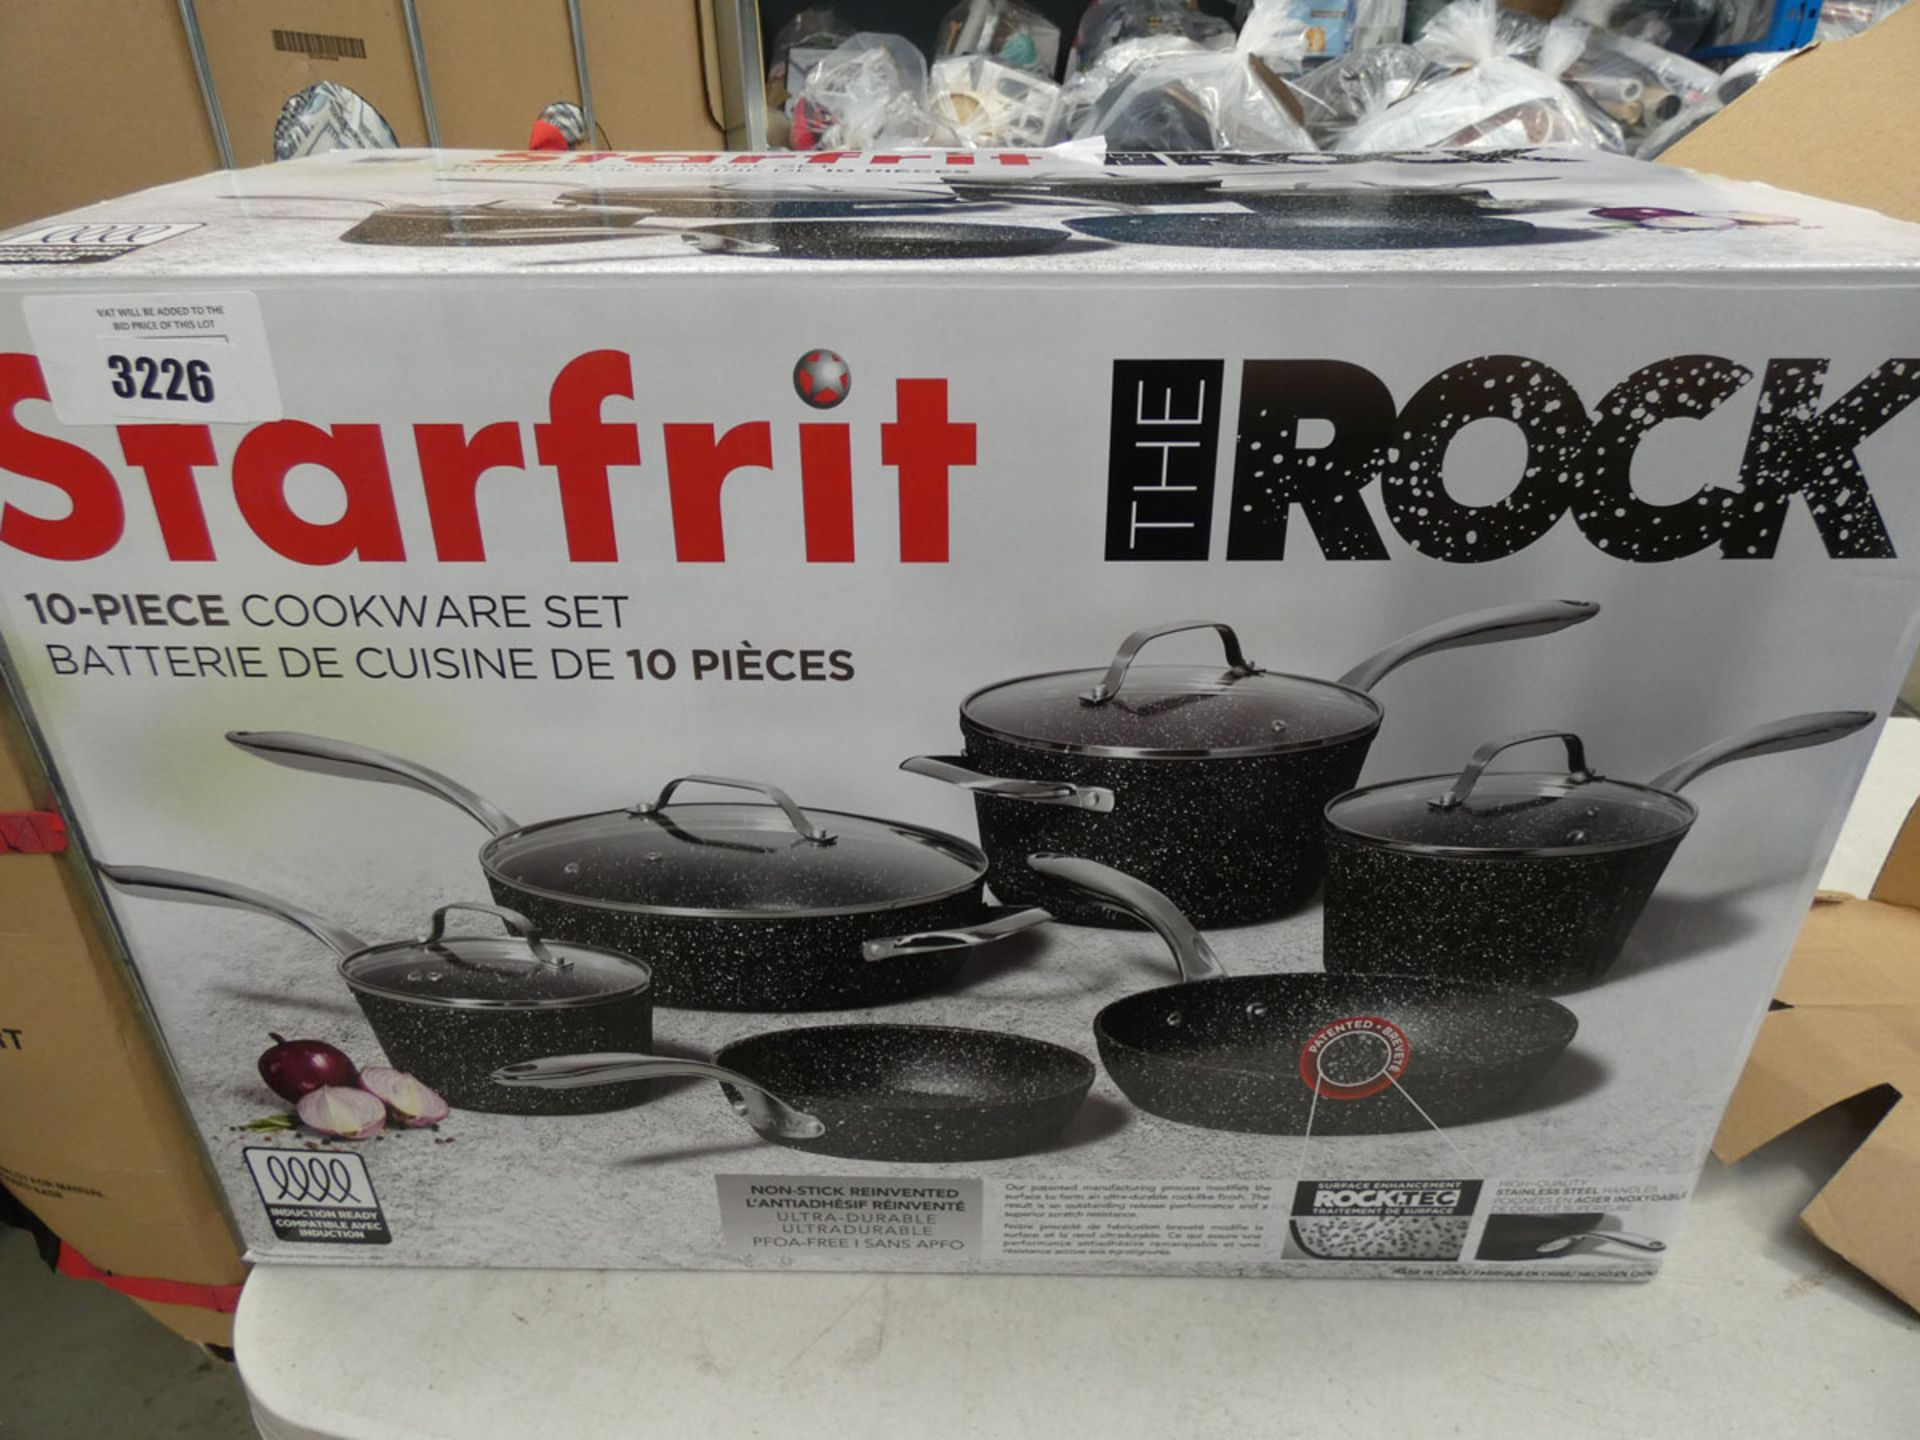 Boxed Starfrit The Rock cookware set